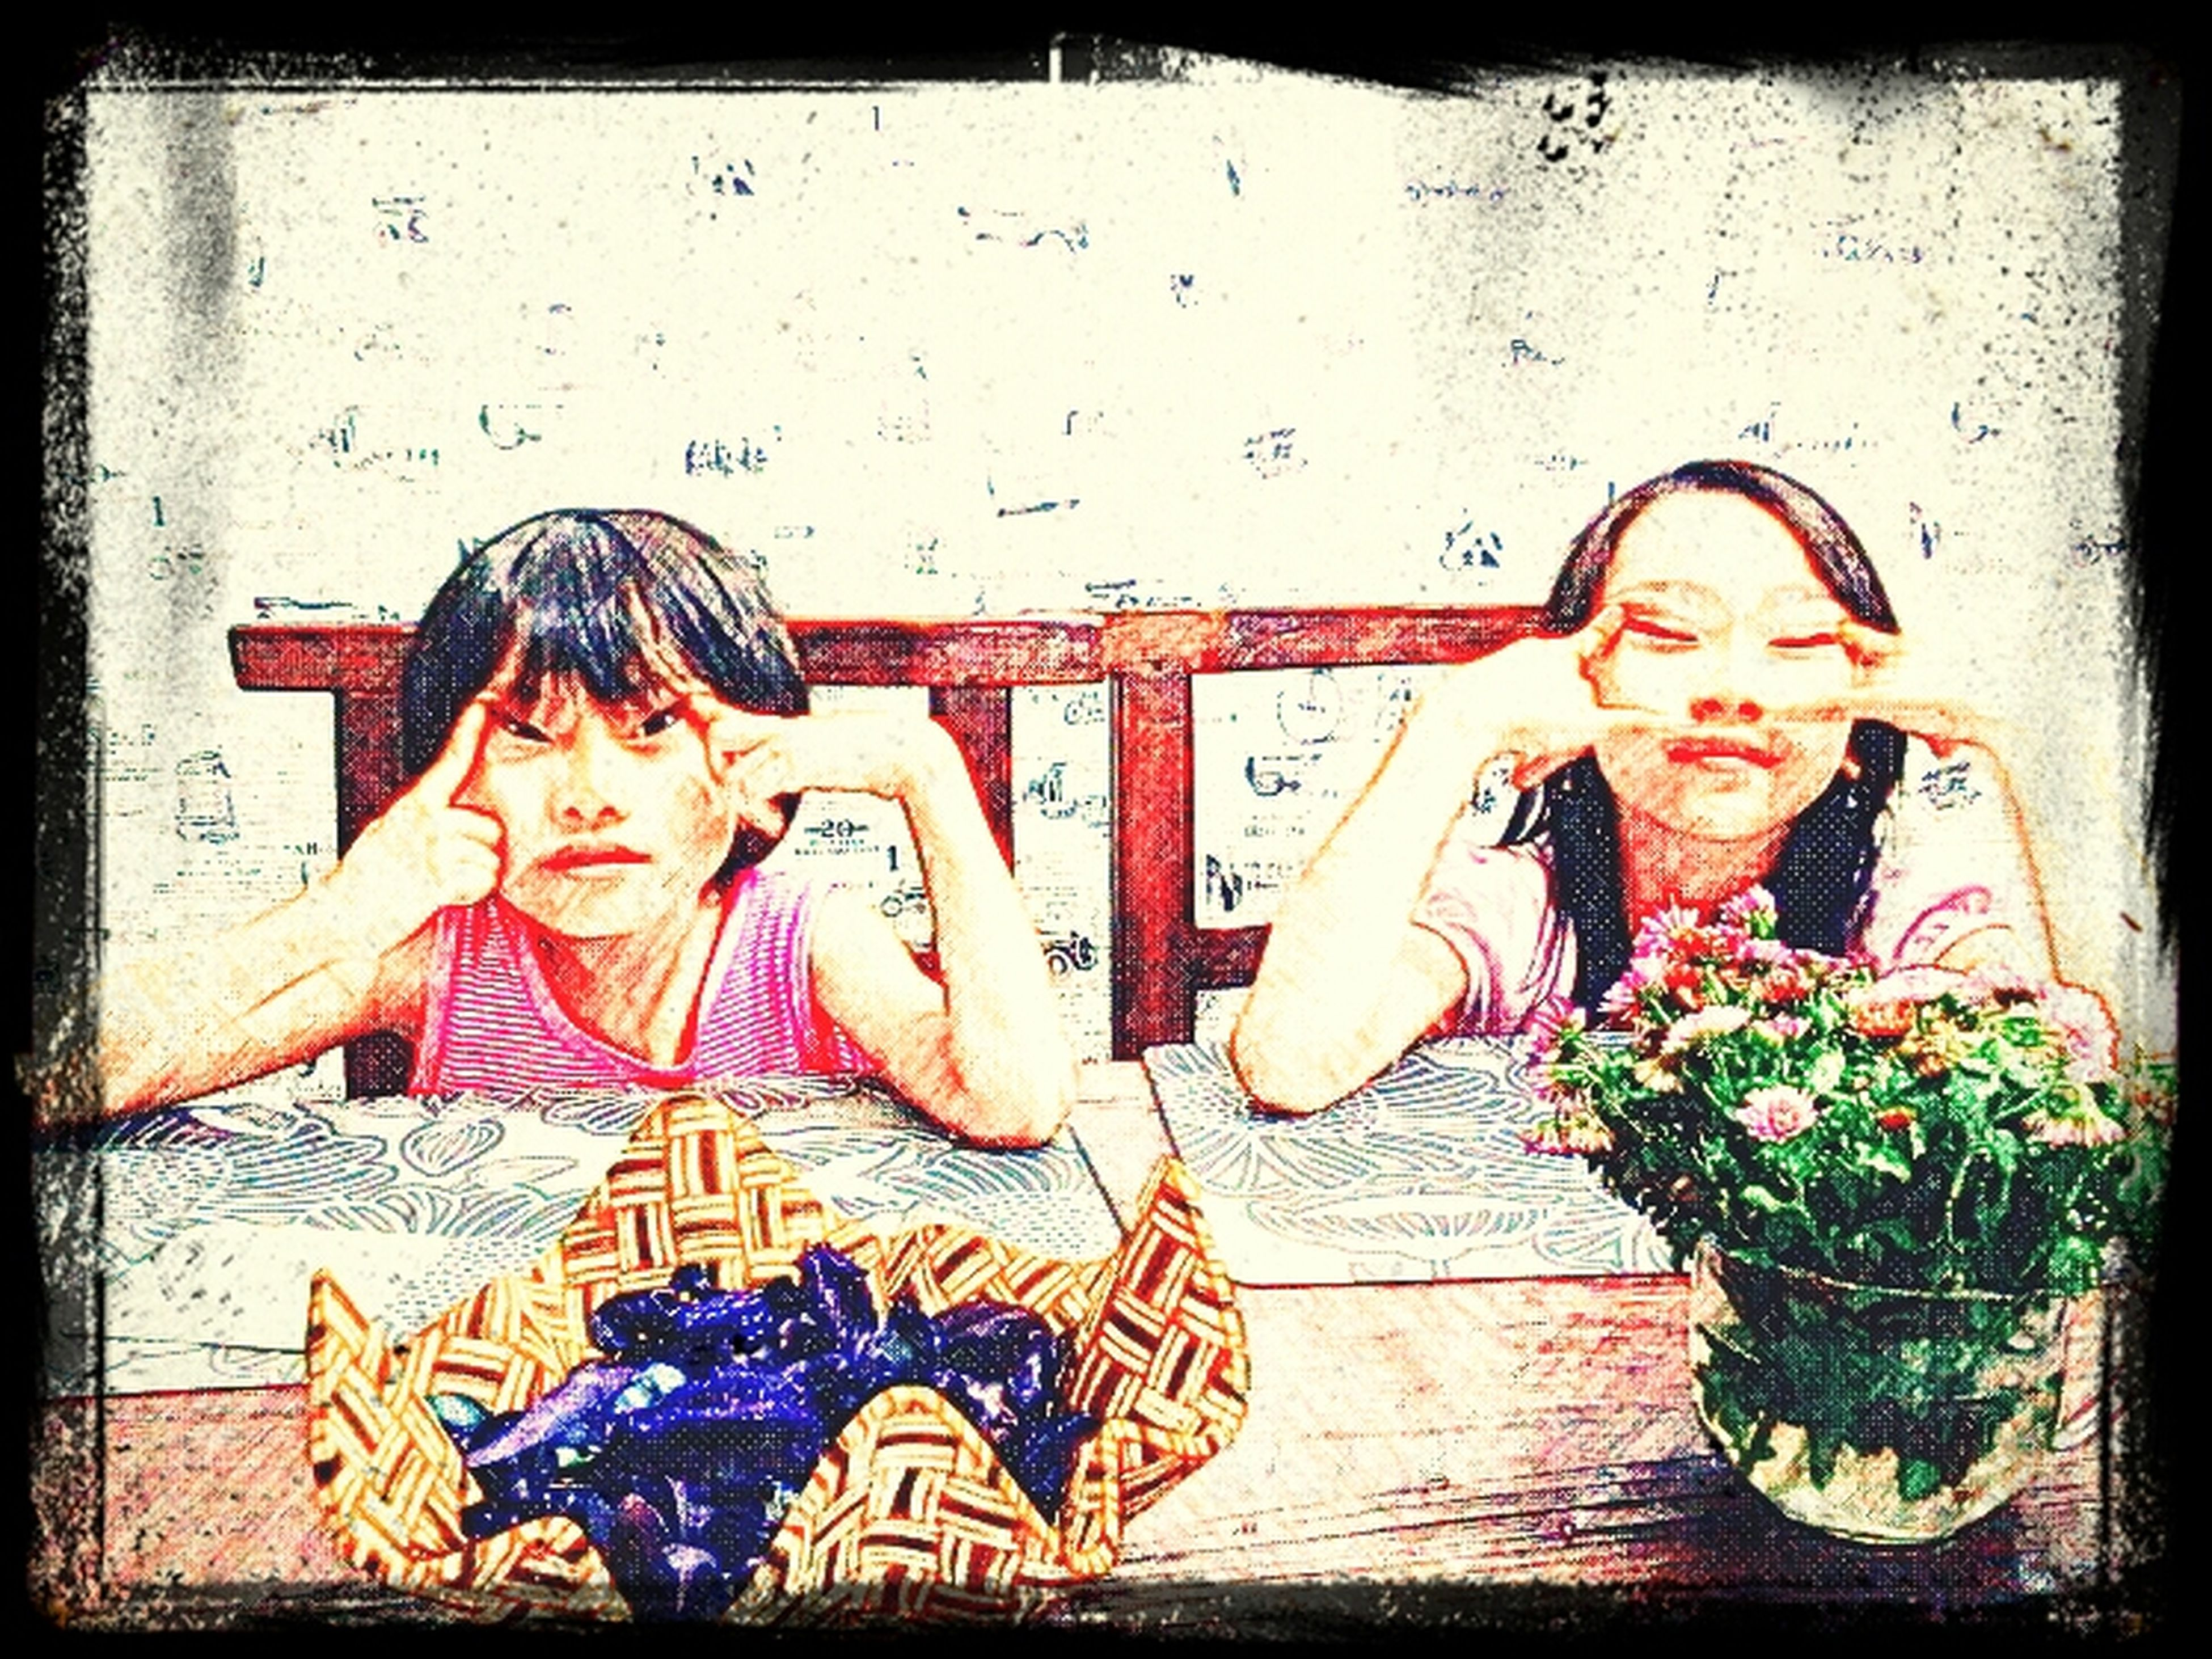 Lunch Kids Playing Girl Happy Hour Children Friend Acting Happytime Friendship Photoart Kidstagram Waiting For The Lunch... Sketchclub Sketchart